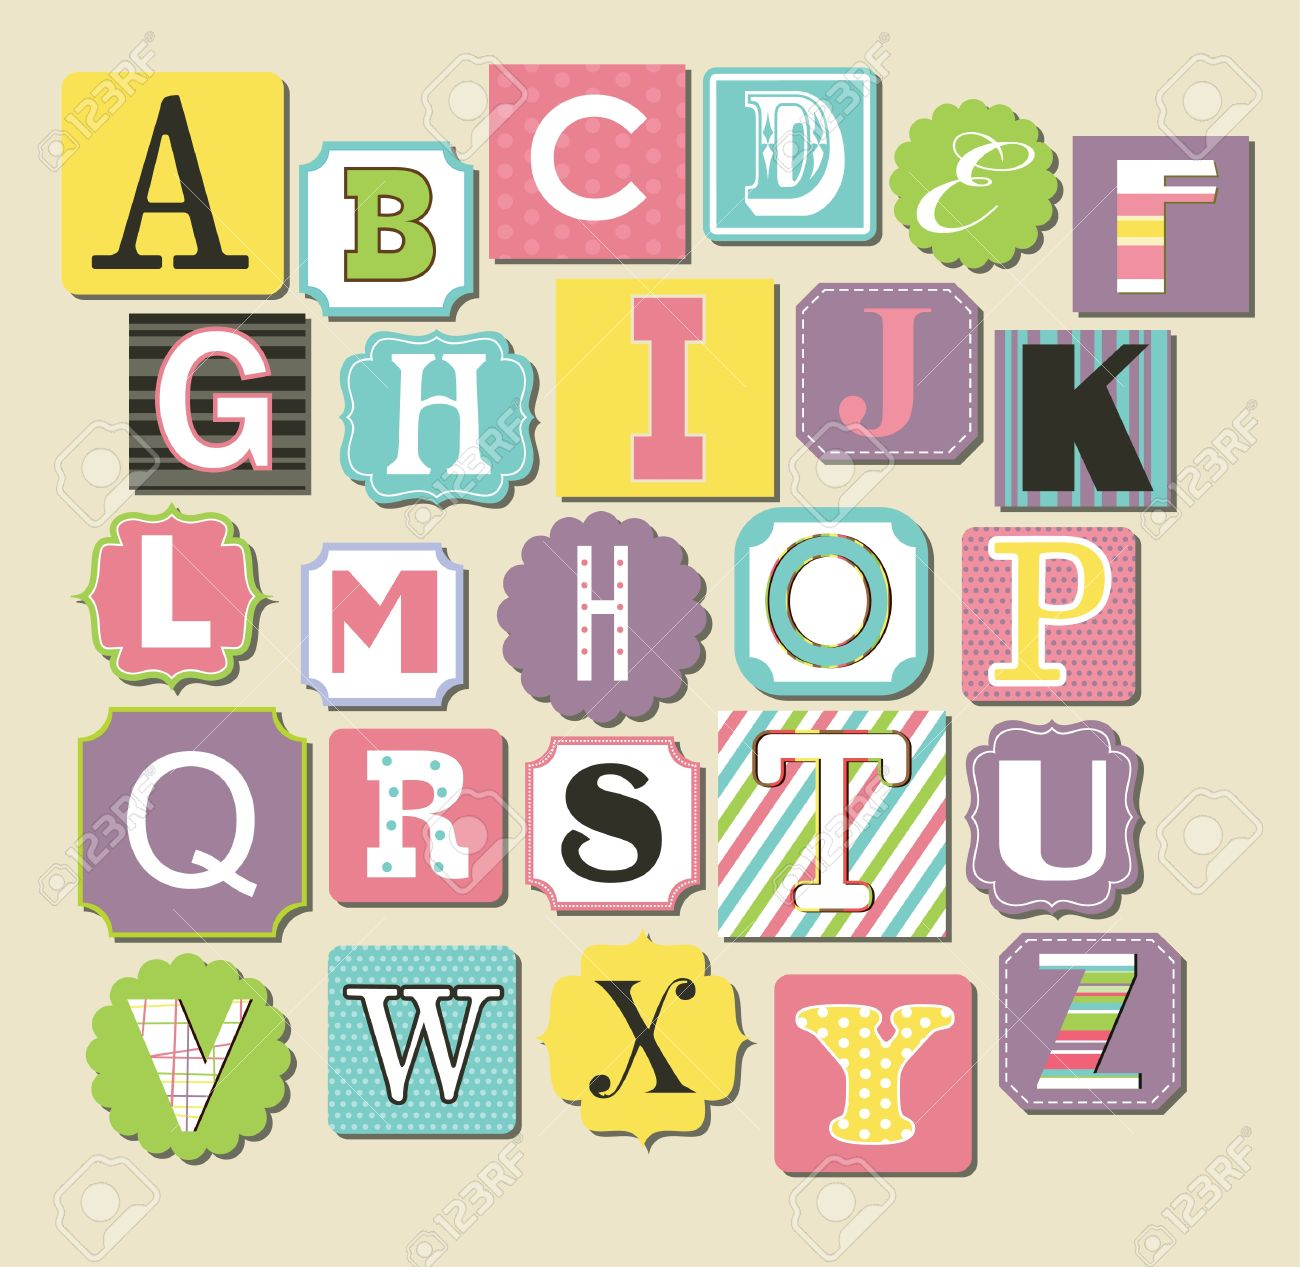 Cute alphabet design vector illustration royalty free cliparts cute alphabet design vector illustration stock vector 20562288 altavistaventures Images